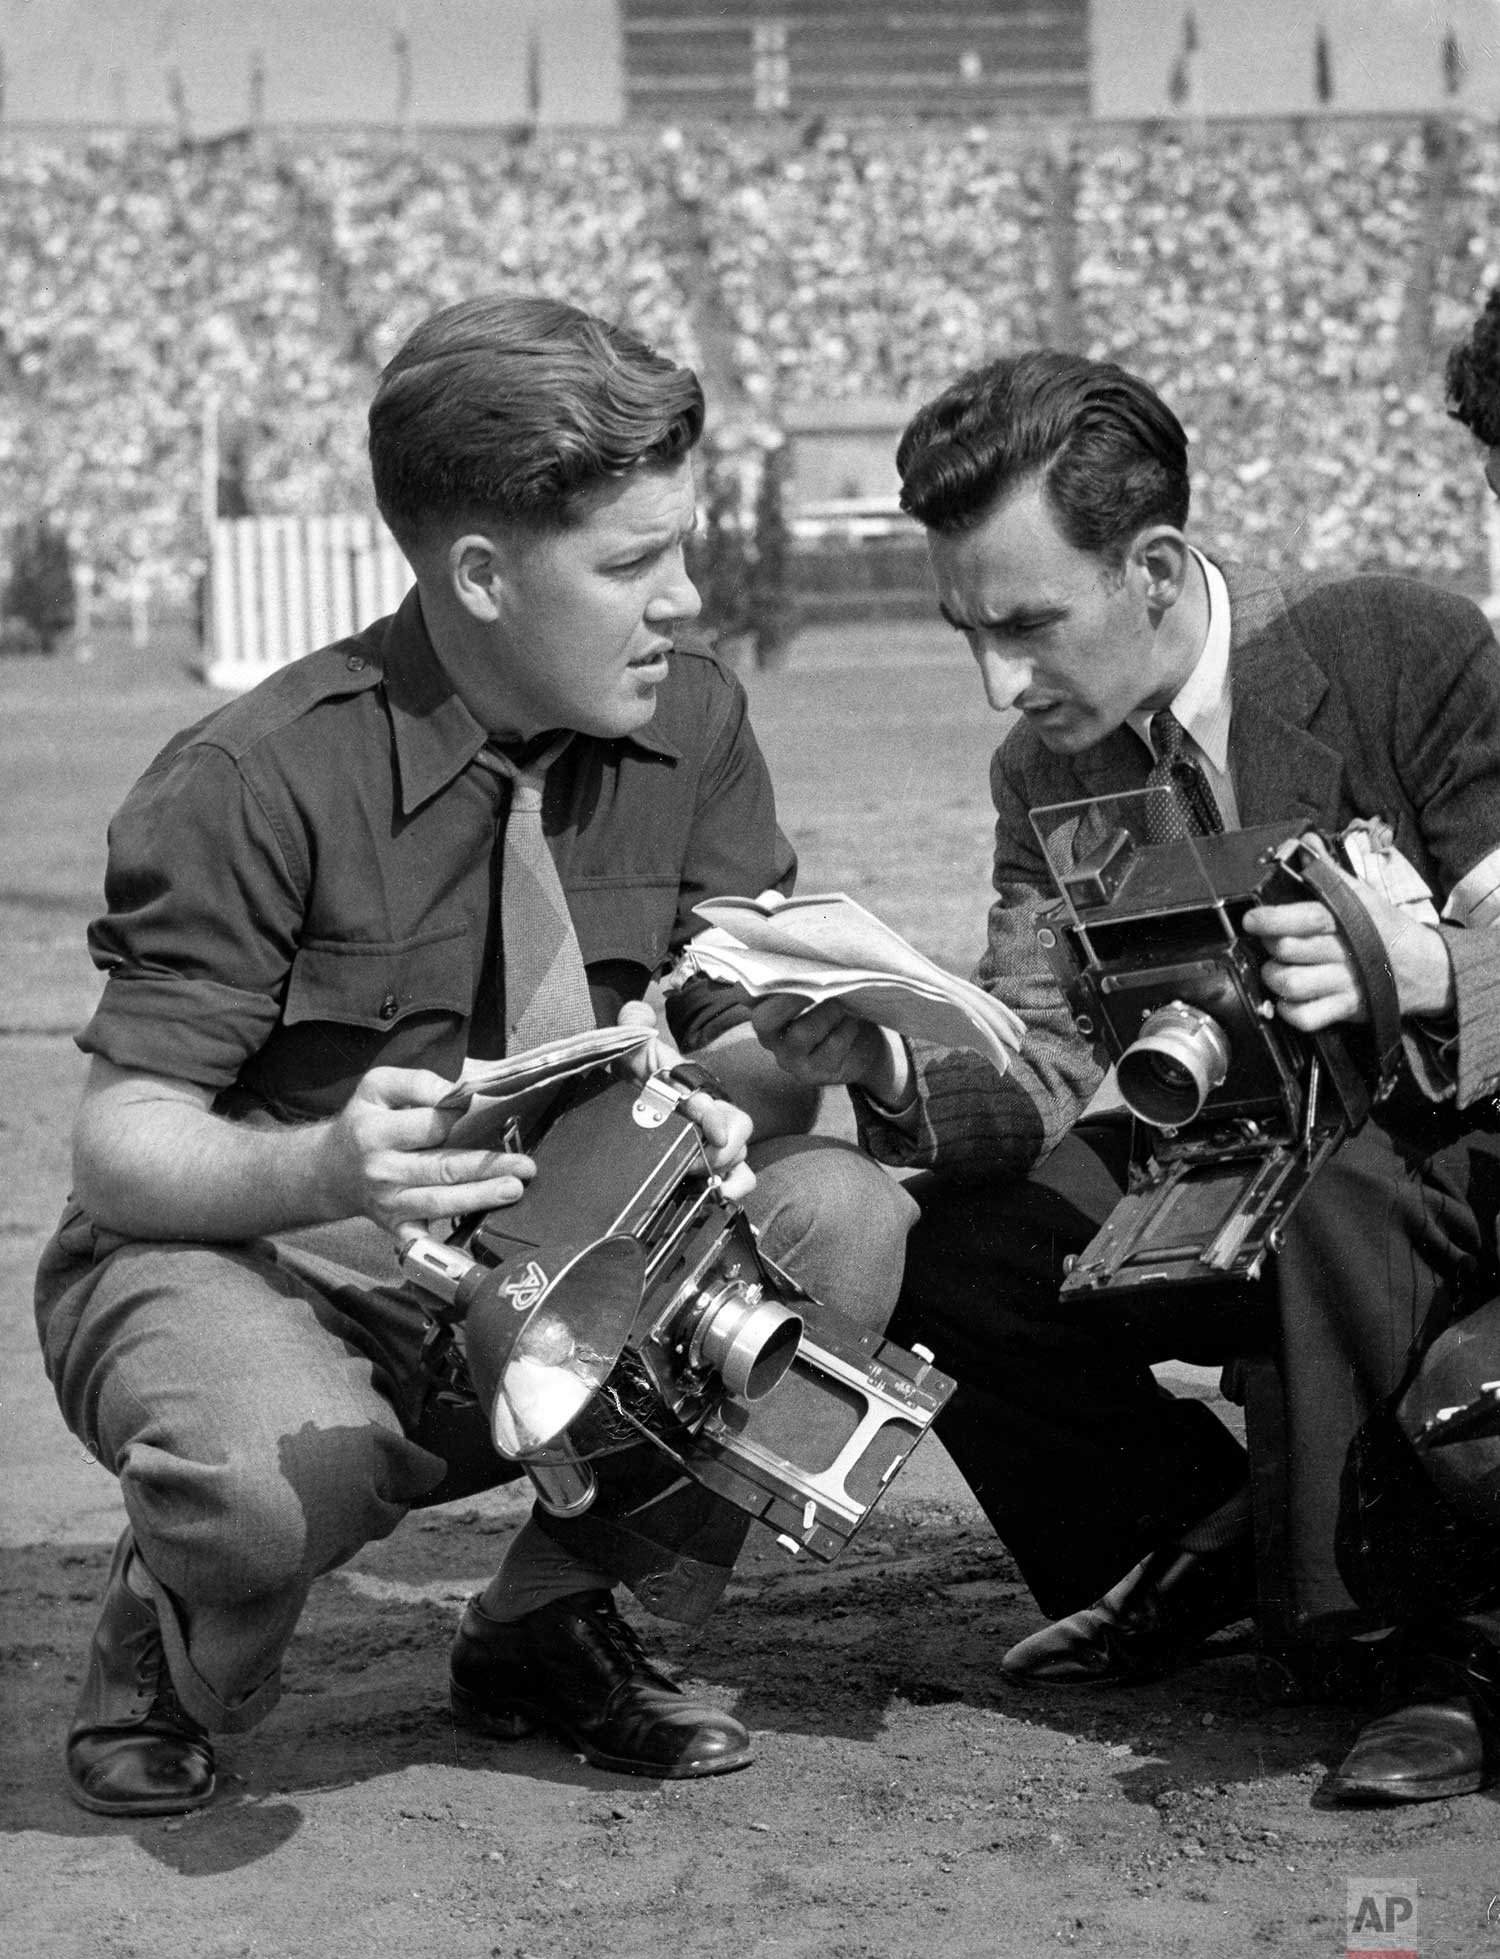 AP Boston photographer J. Walter Green, assigned to Rome, discusses coverage with AP London photographer Lawrence Harris at London's Wembley Stadium during the Summer Olympics, August 1948. (AP Photo)